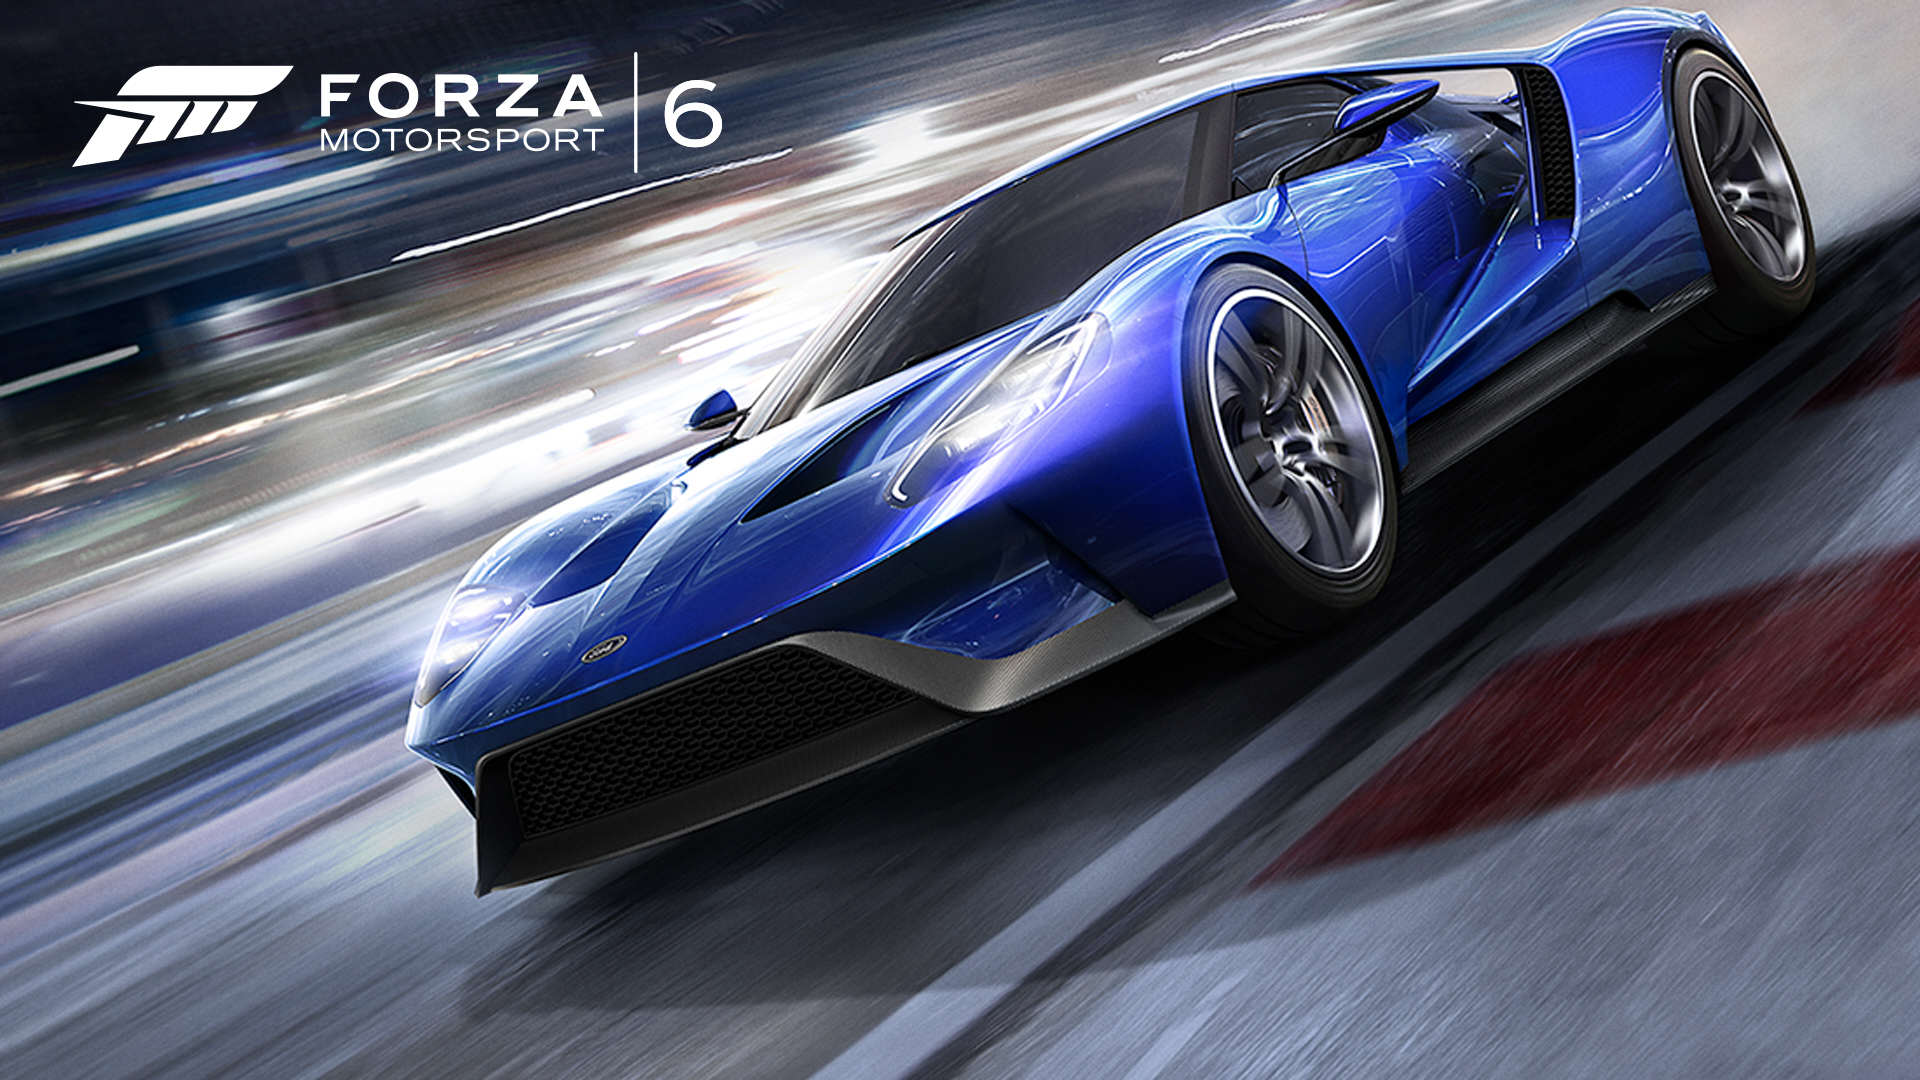 Forza Motorsport 6 main wallpaper Here Are The 2016 DICE Award Winners